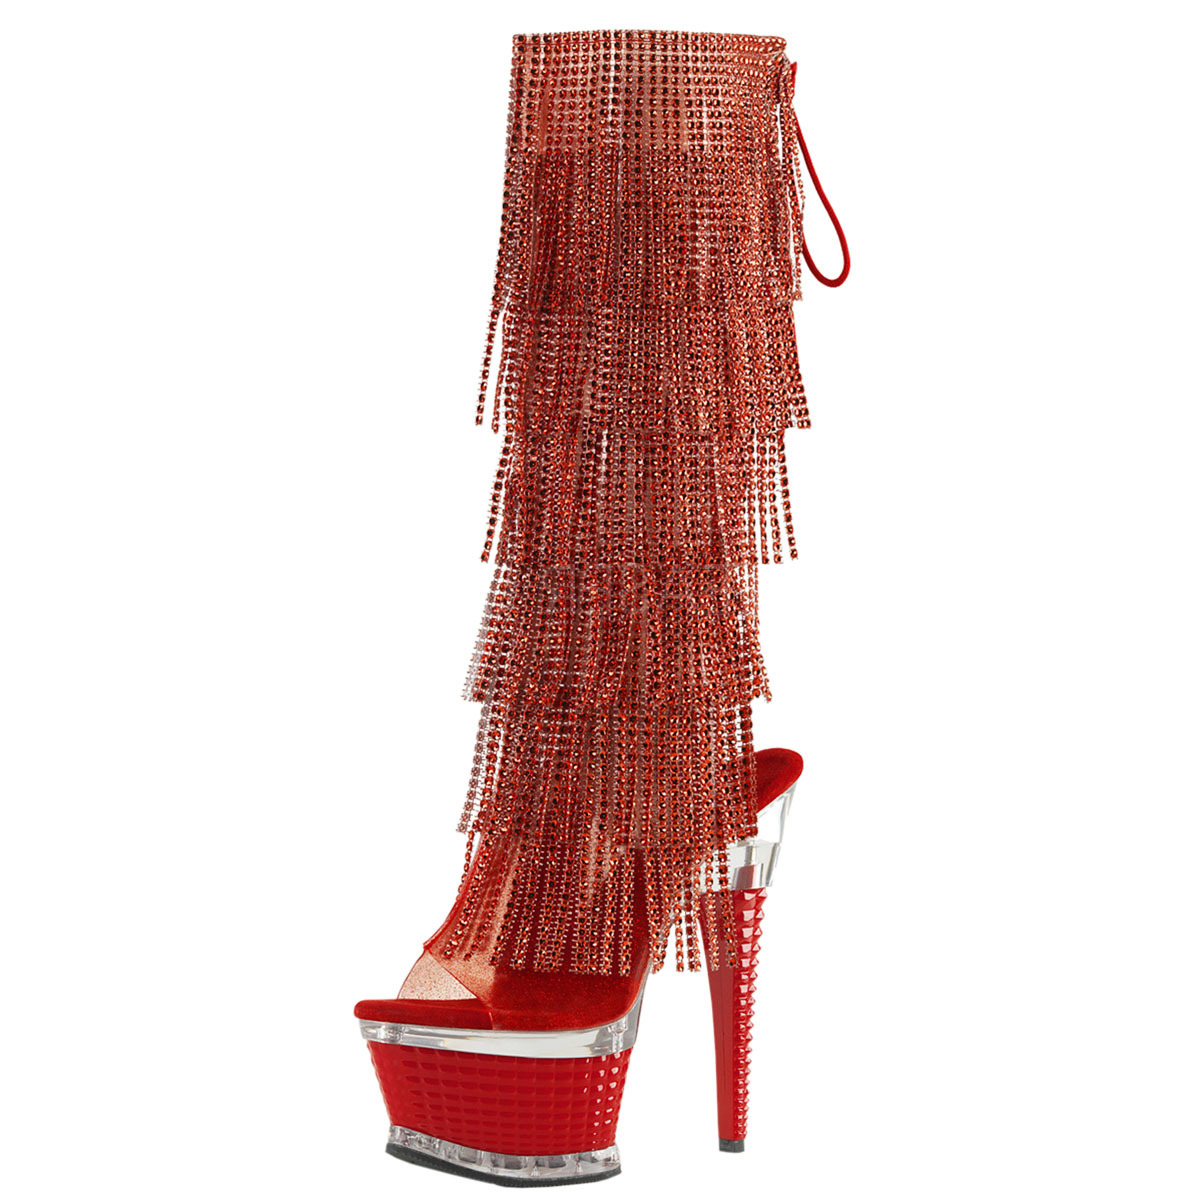 Womens Red Fringe Boots Rhinestone Shoes Knee High Textur...